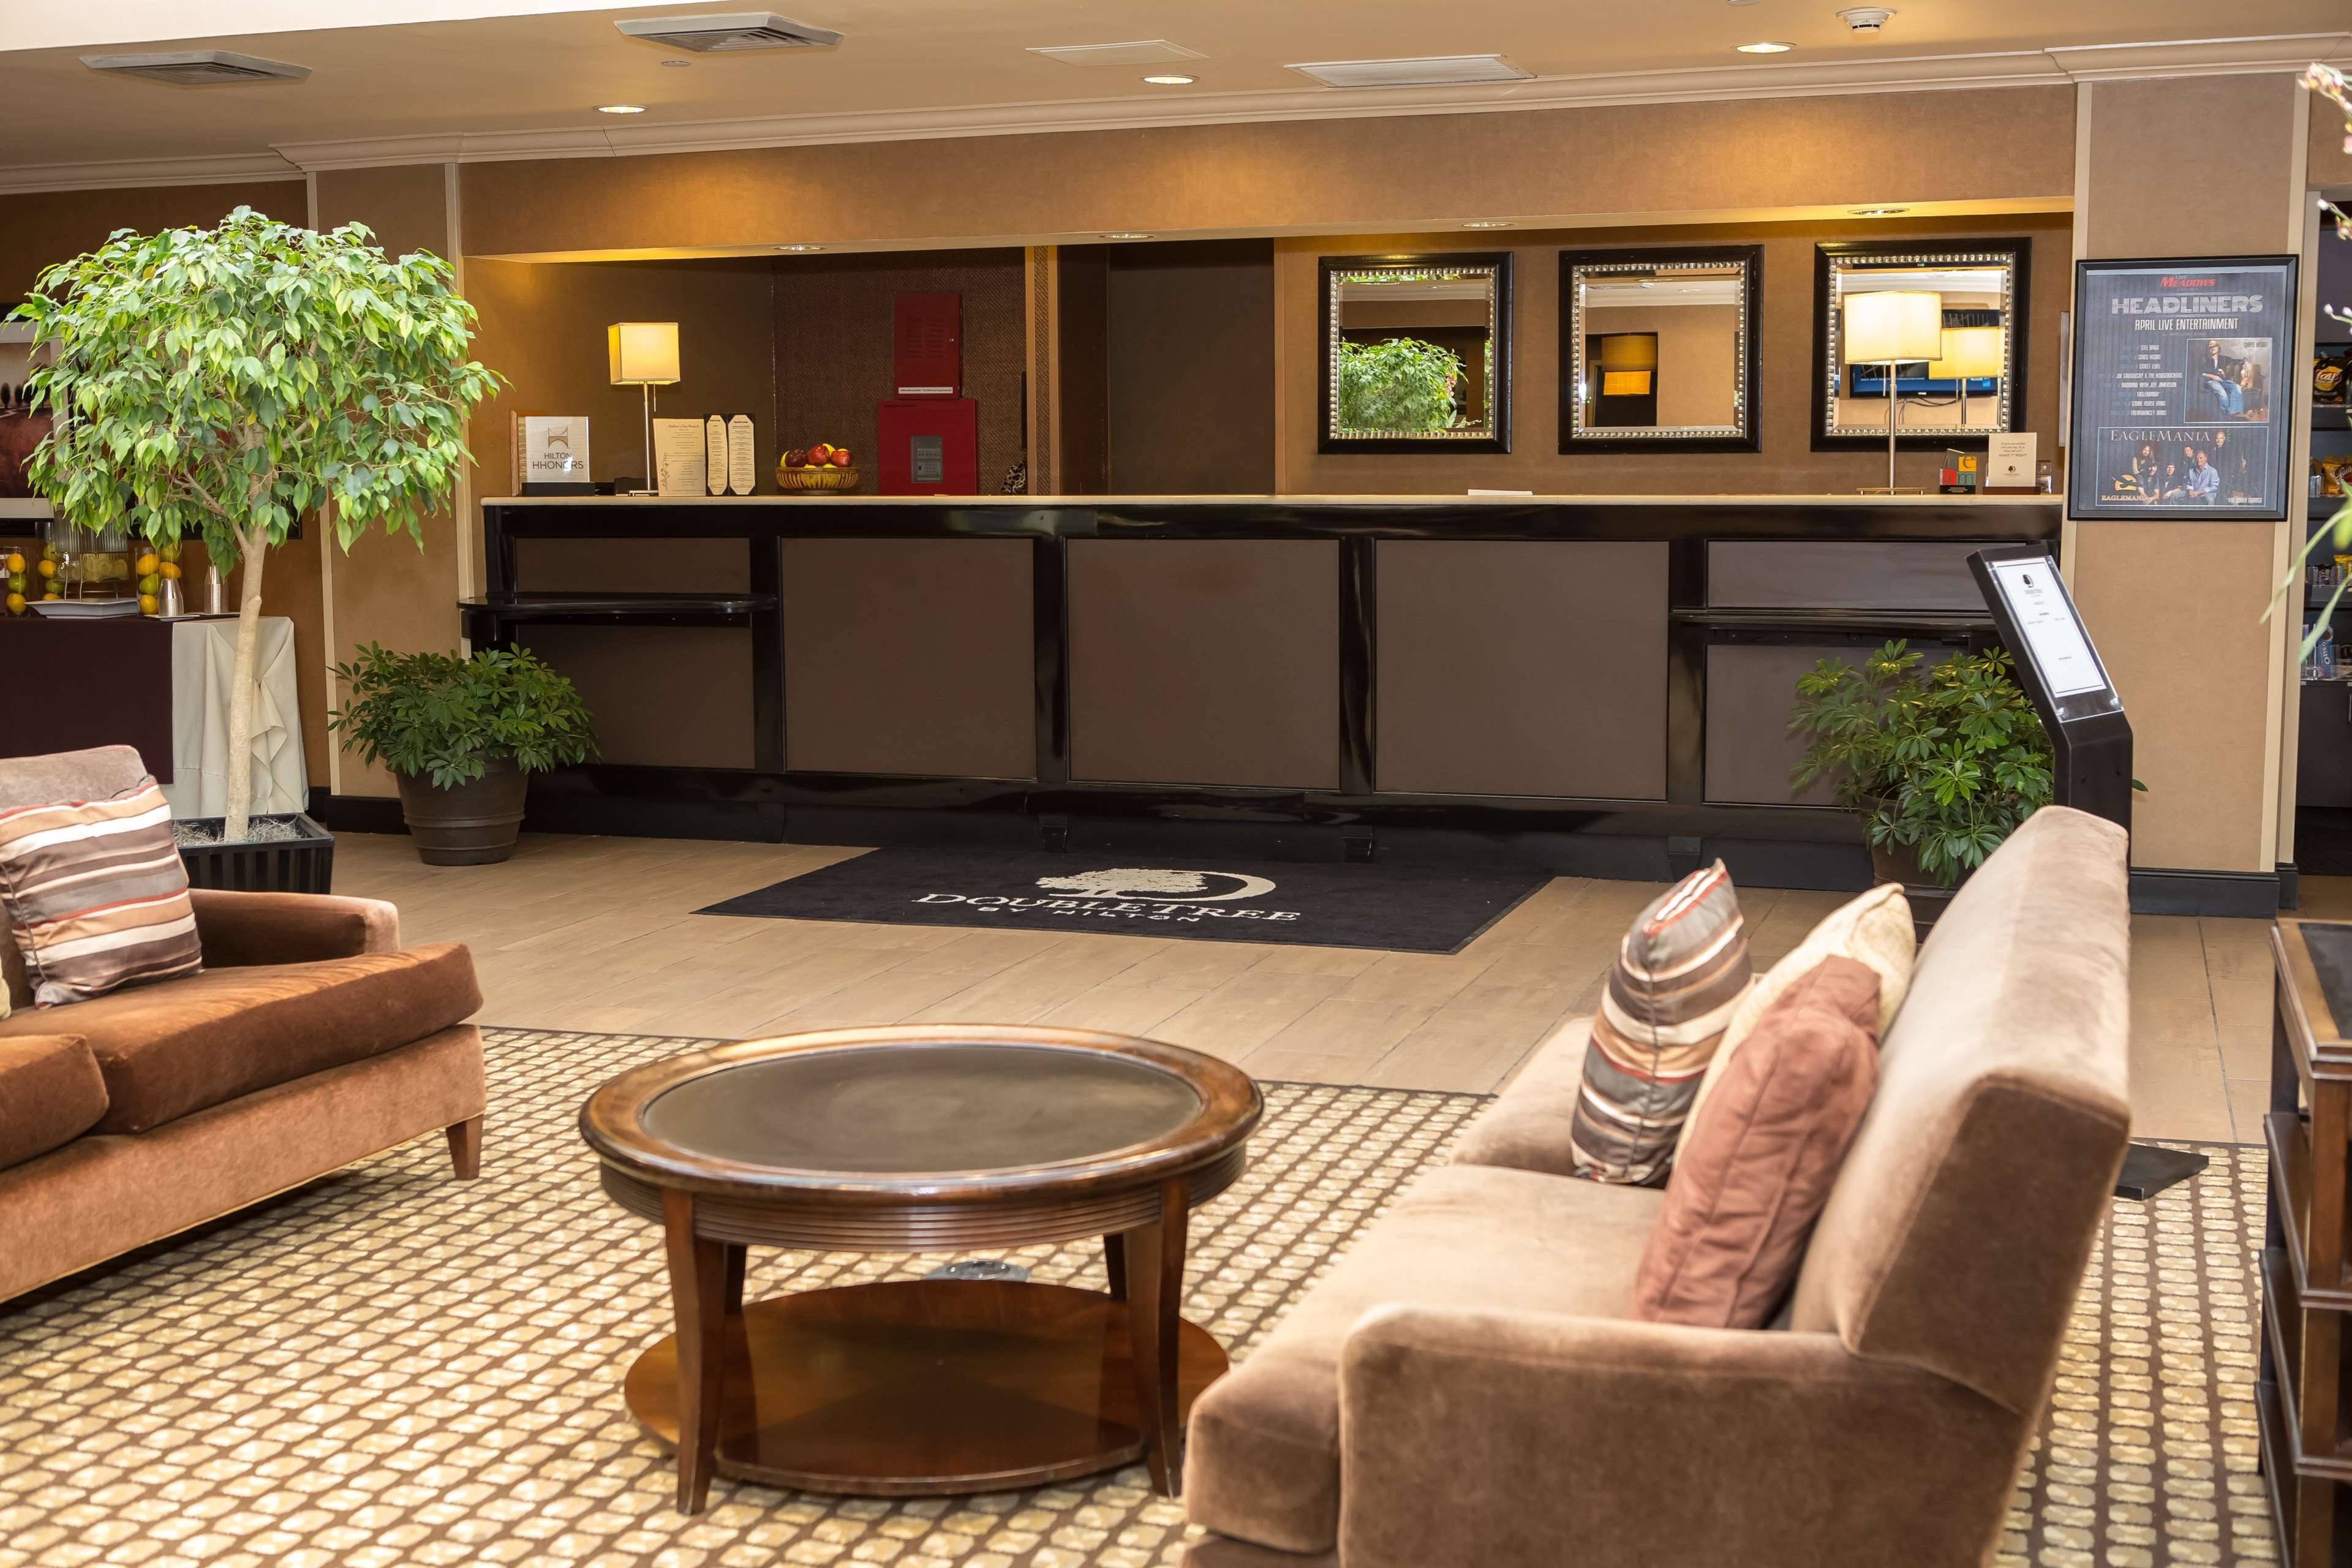 DoubleTree by Hilton Hotel Pittsburgh - Meadow Lands image 5